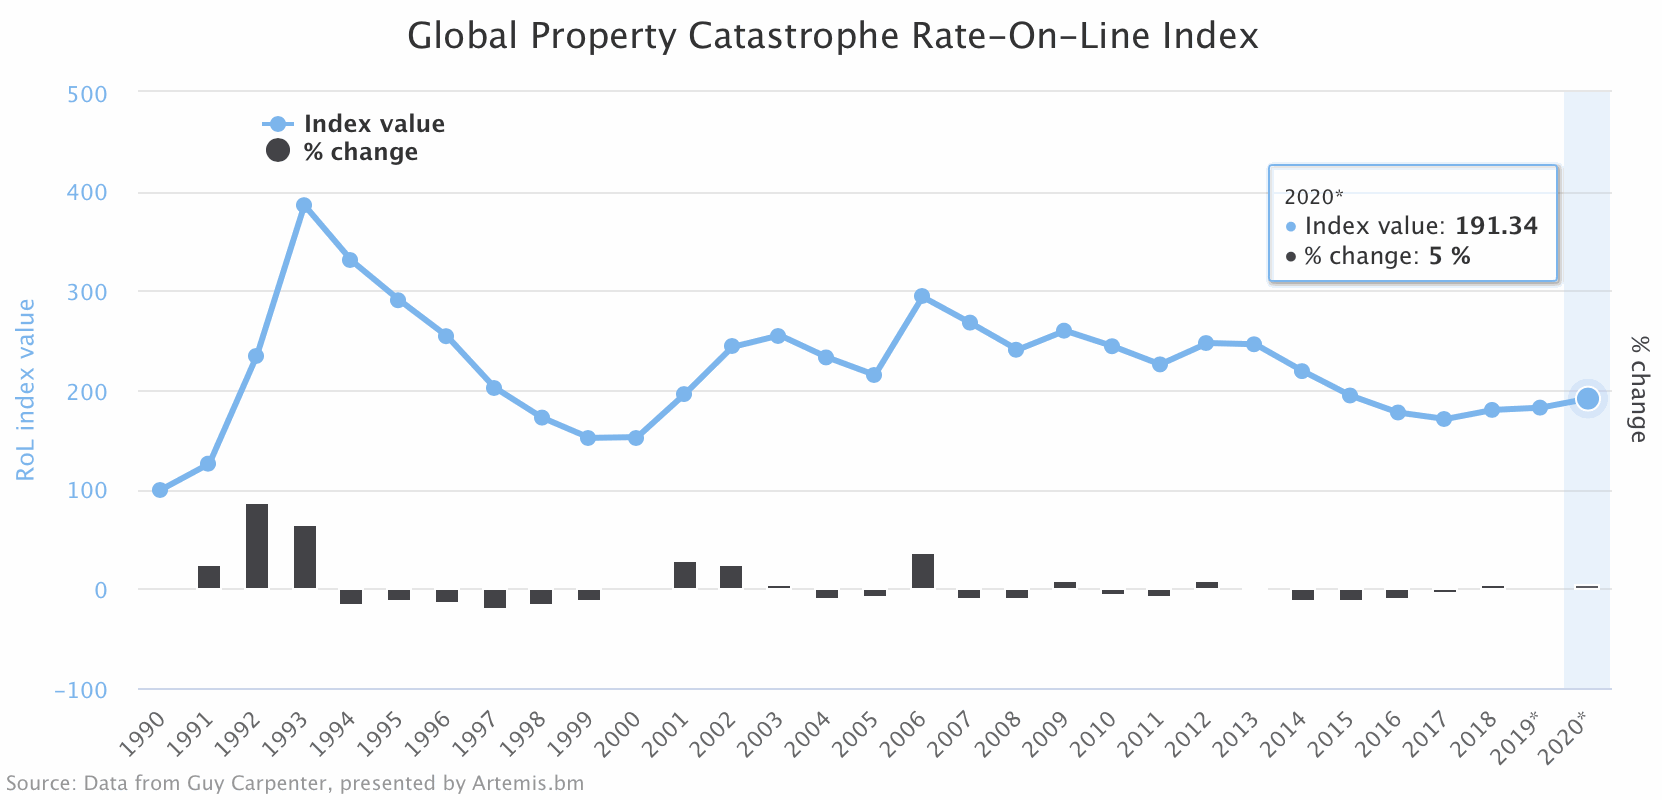 Global property catastrophe reinsurance rate-on-line index 2020